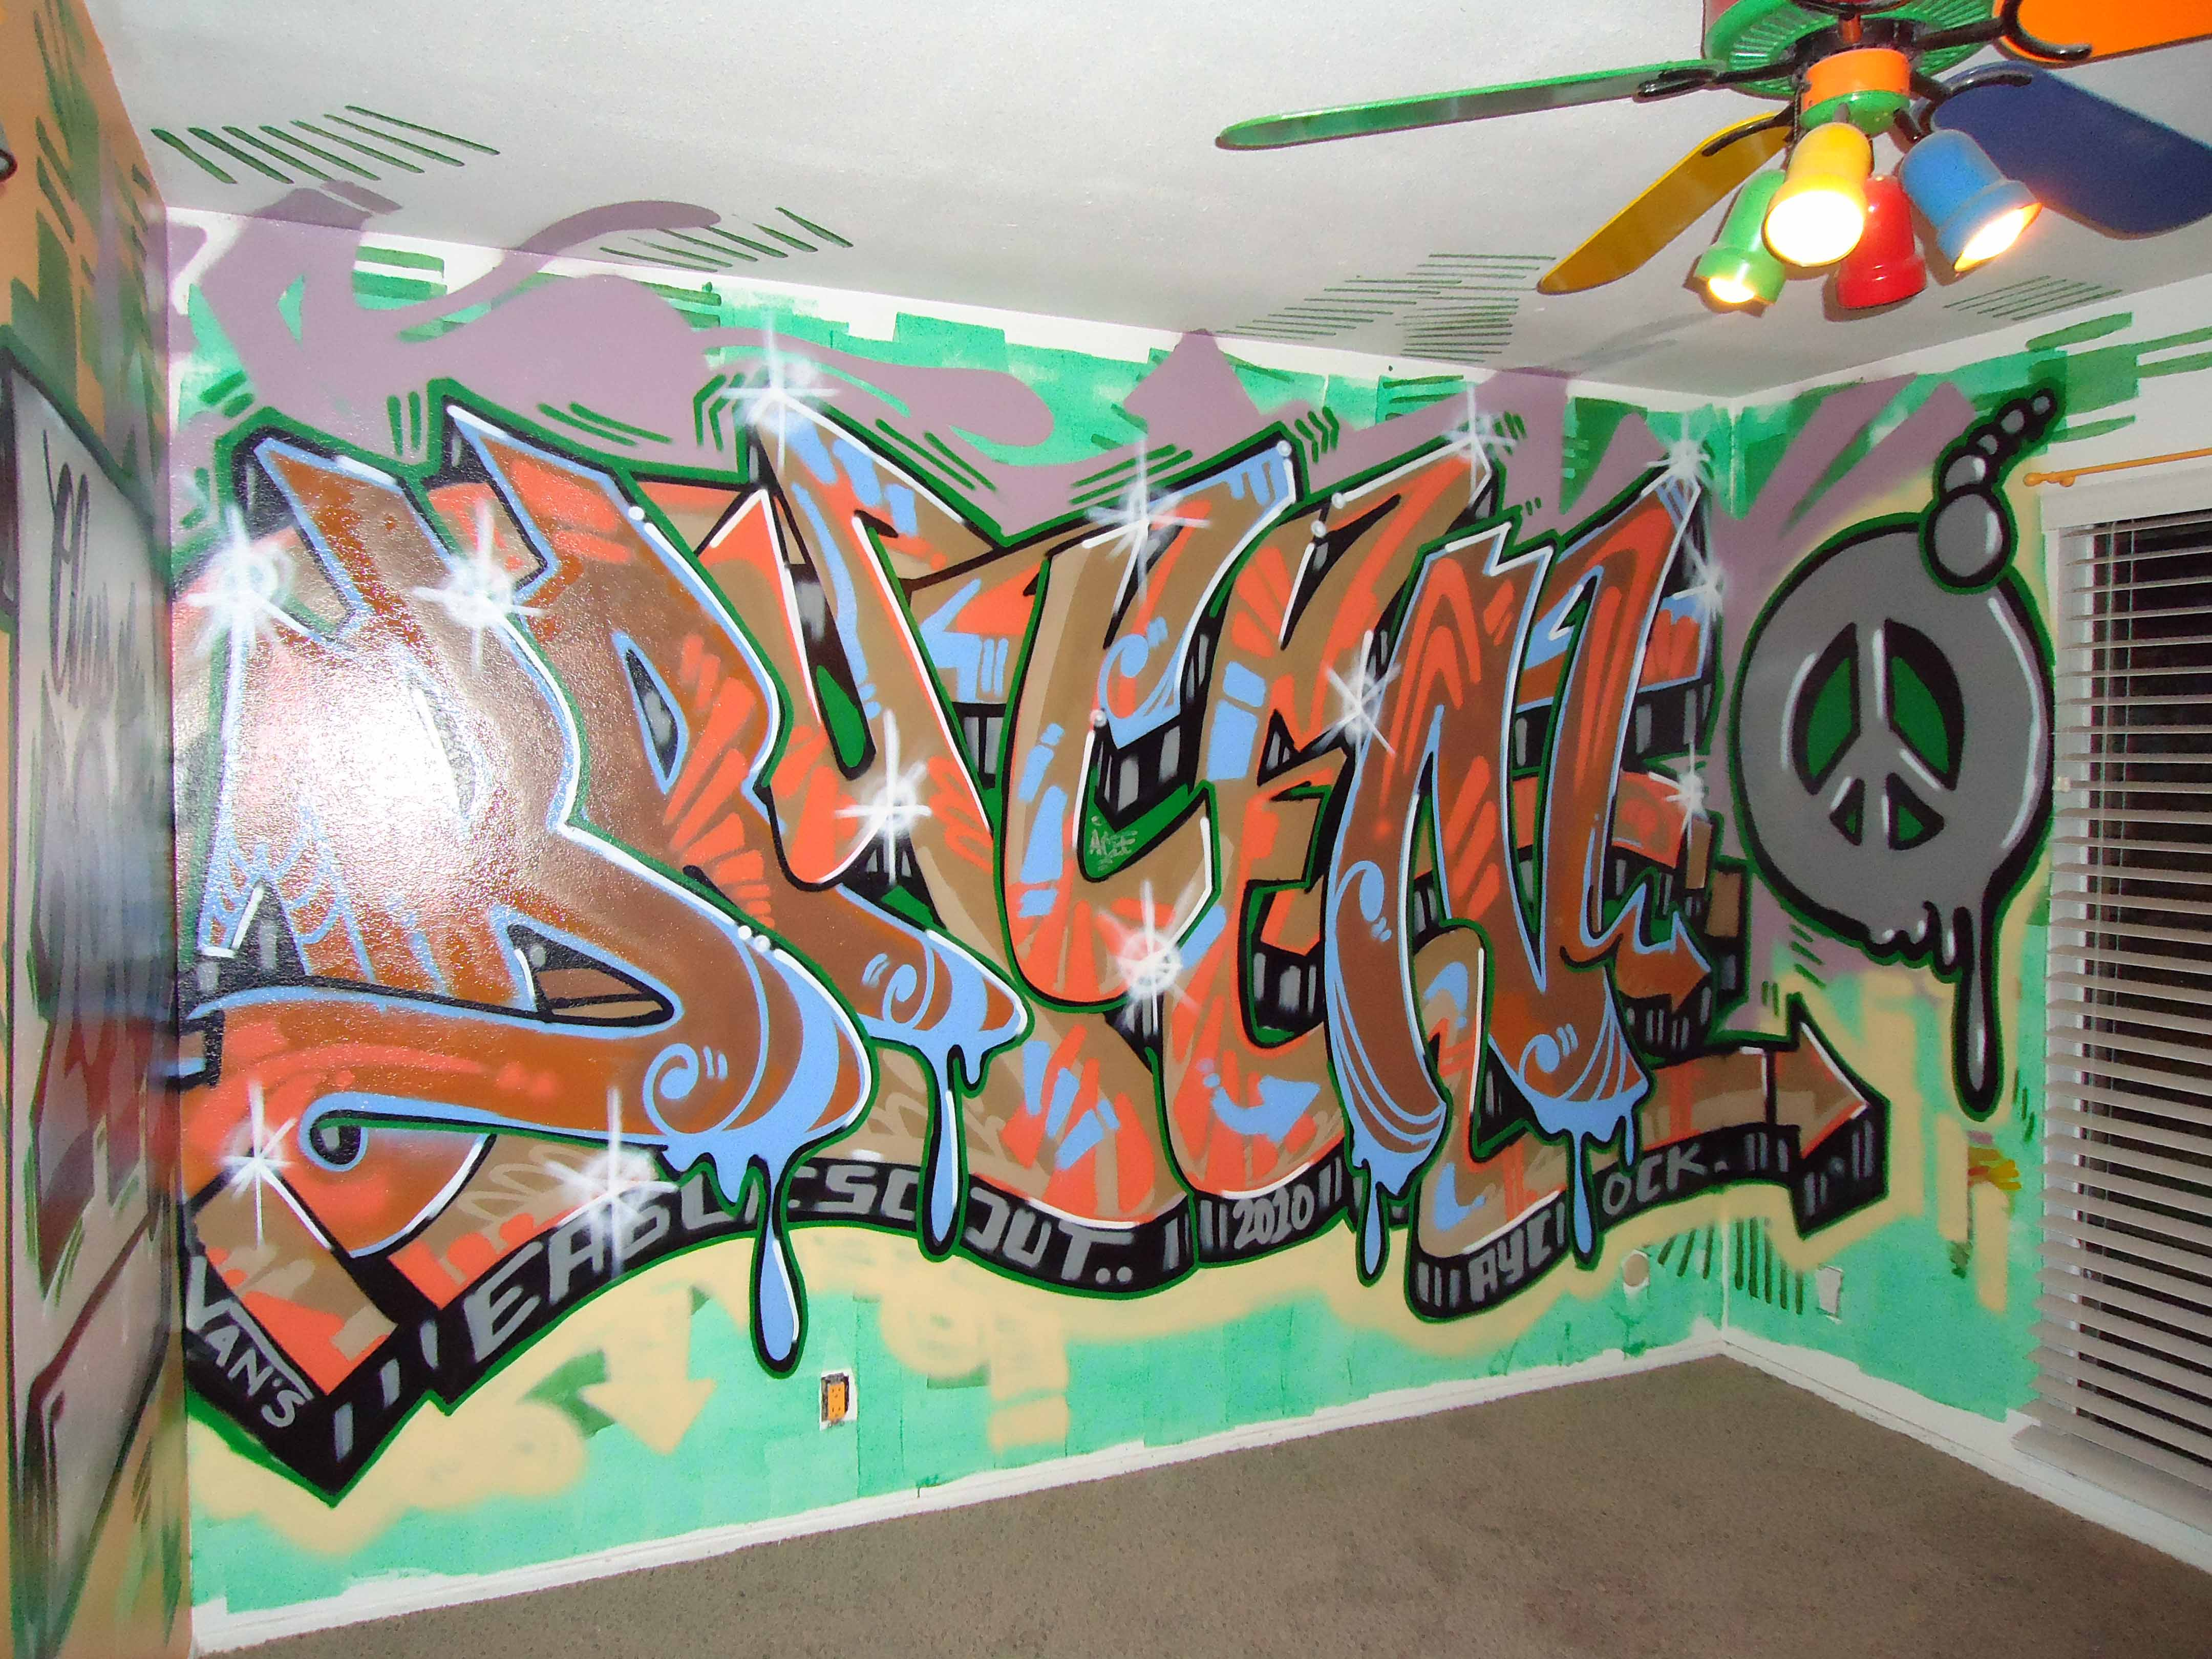 My son is now a teenager and decided he wanted to redecorate his room i hope he likes the graffiti wall i had done for him while hes away at scout camp